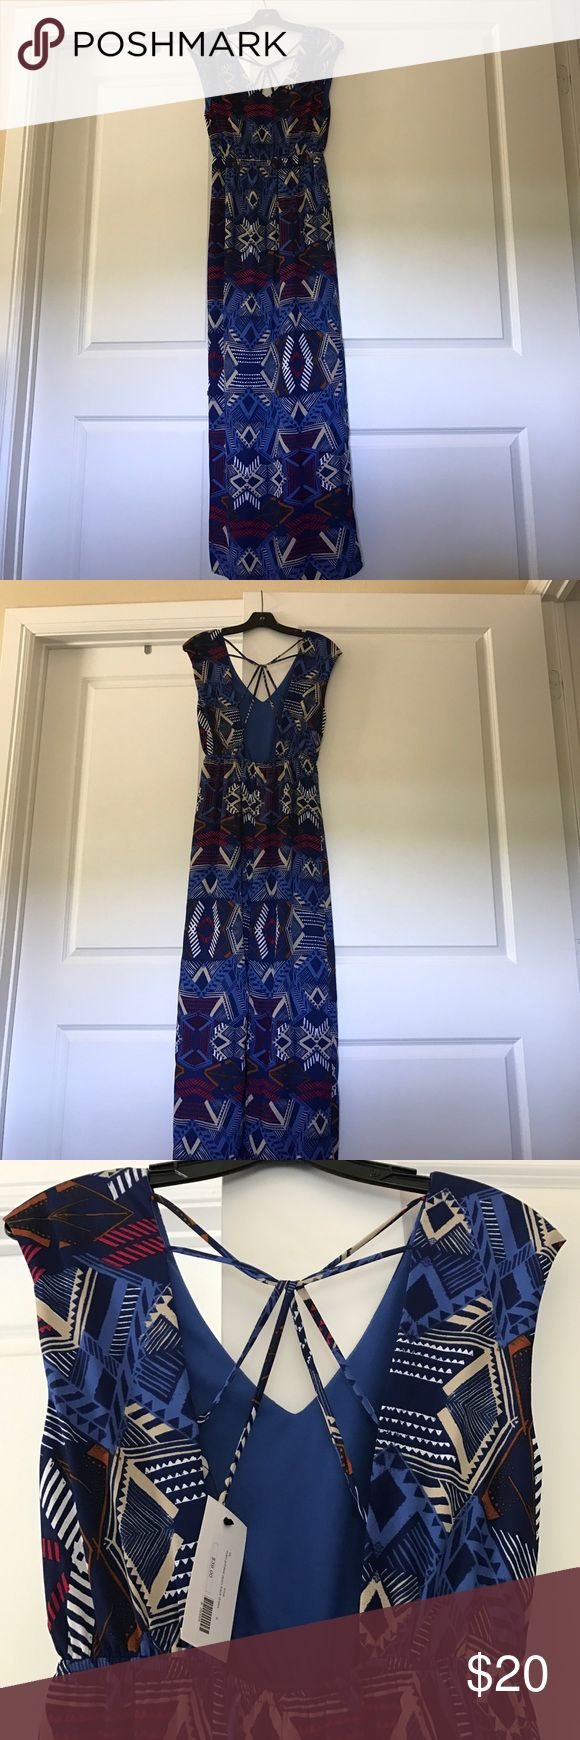 Aztec maxi dress Aztec maxi dress. Slit in back. Open back with design. Never worn. Tags still on. Everly Dresses Maxi